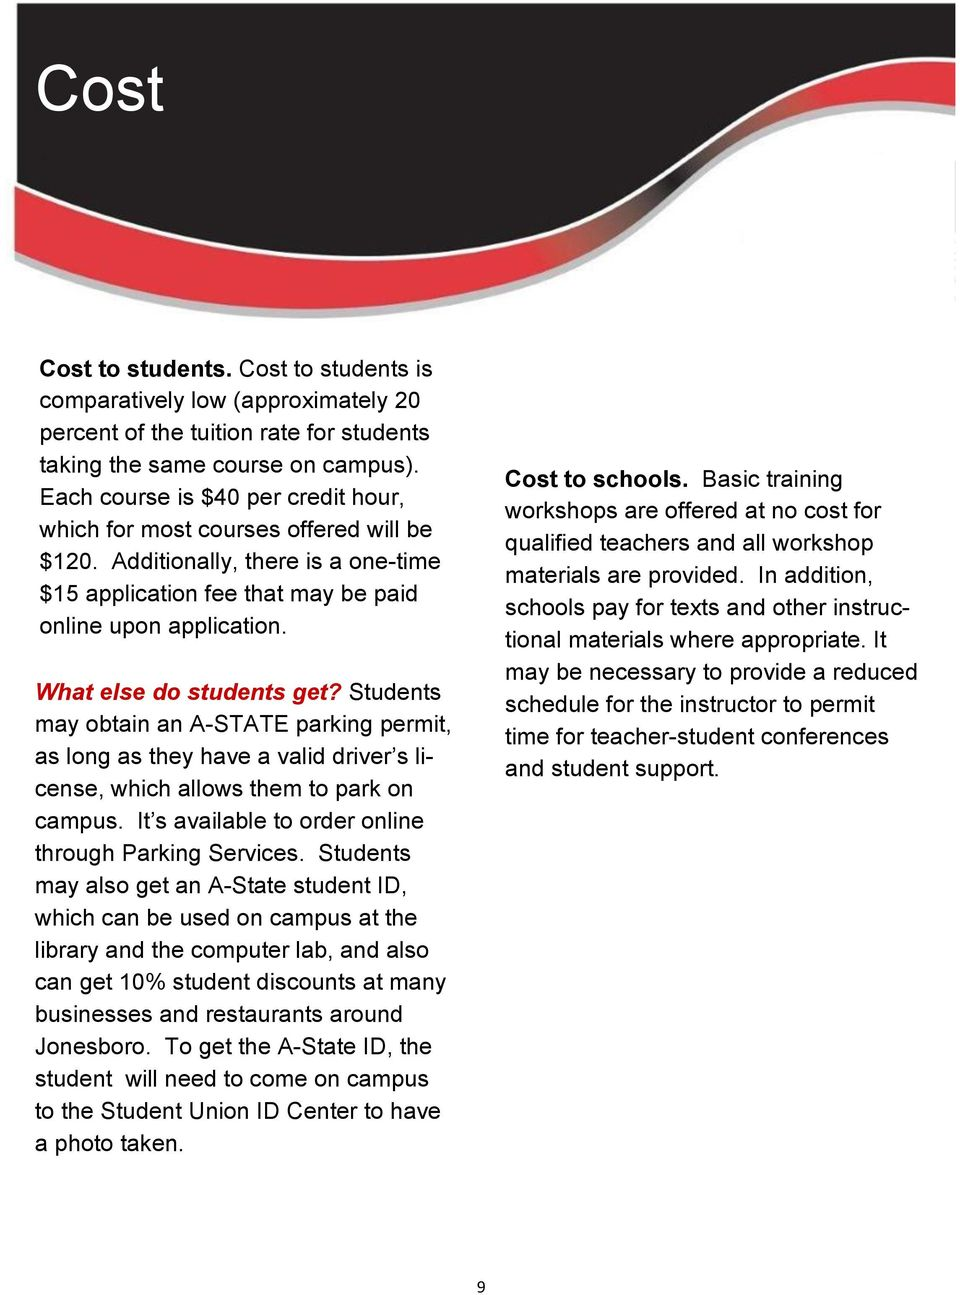 What else do students get? Students may obtain an A-STATE parking permit, as long as they have a valid driver s license, which allows them to park on campus.